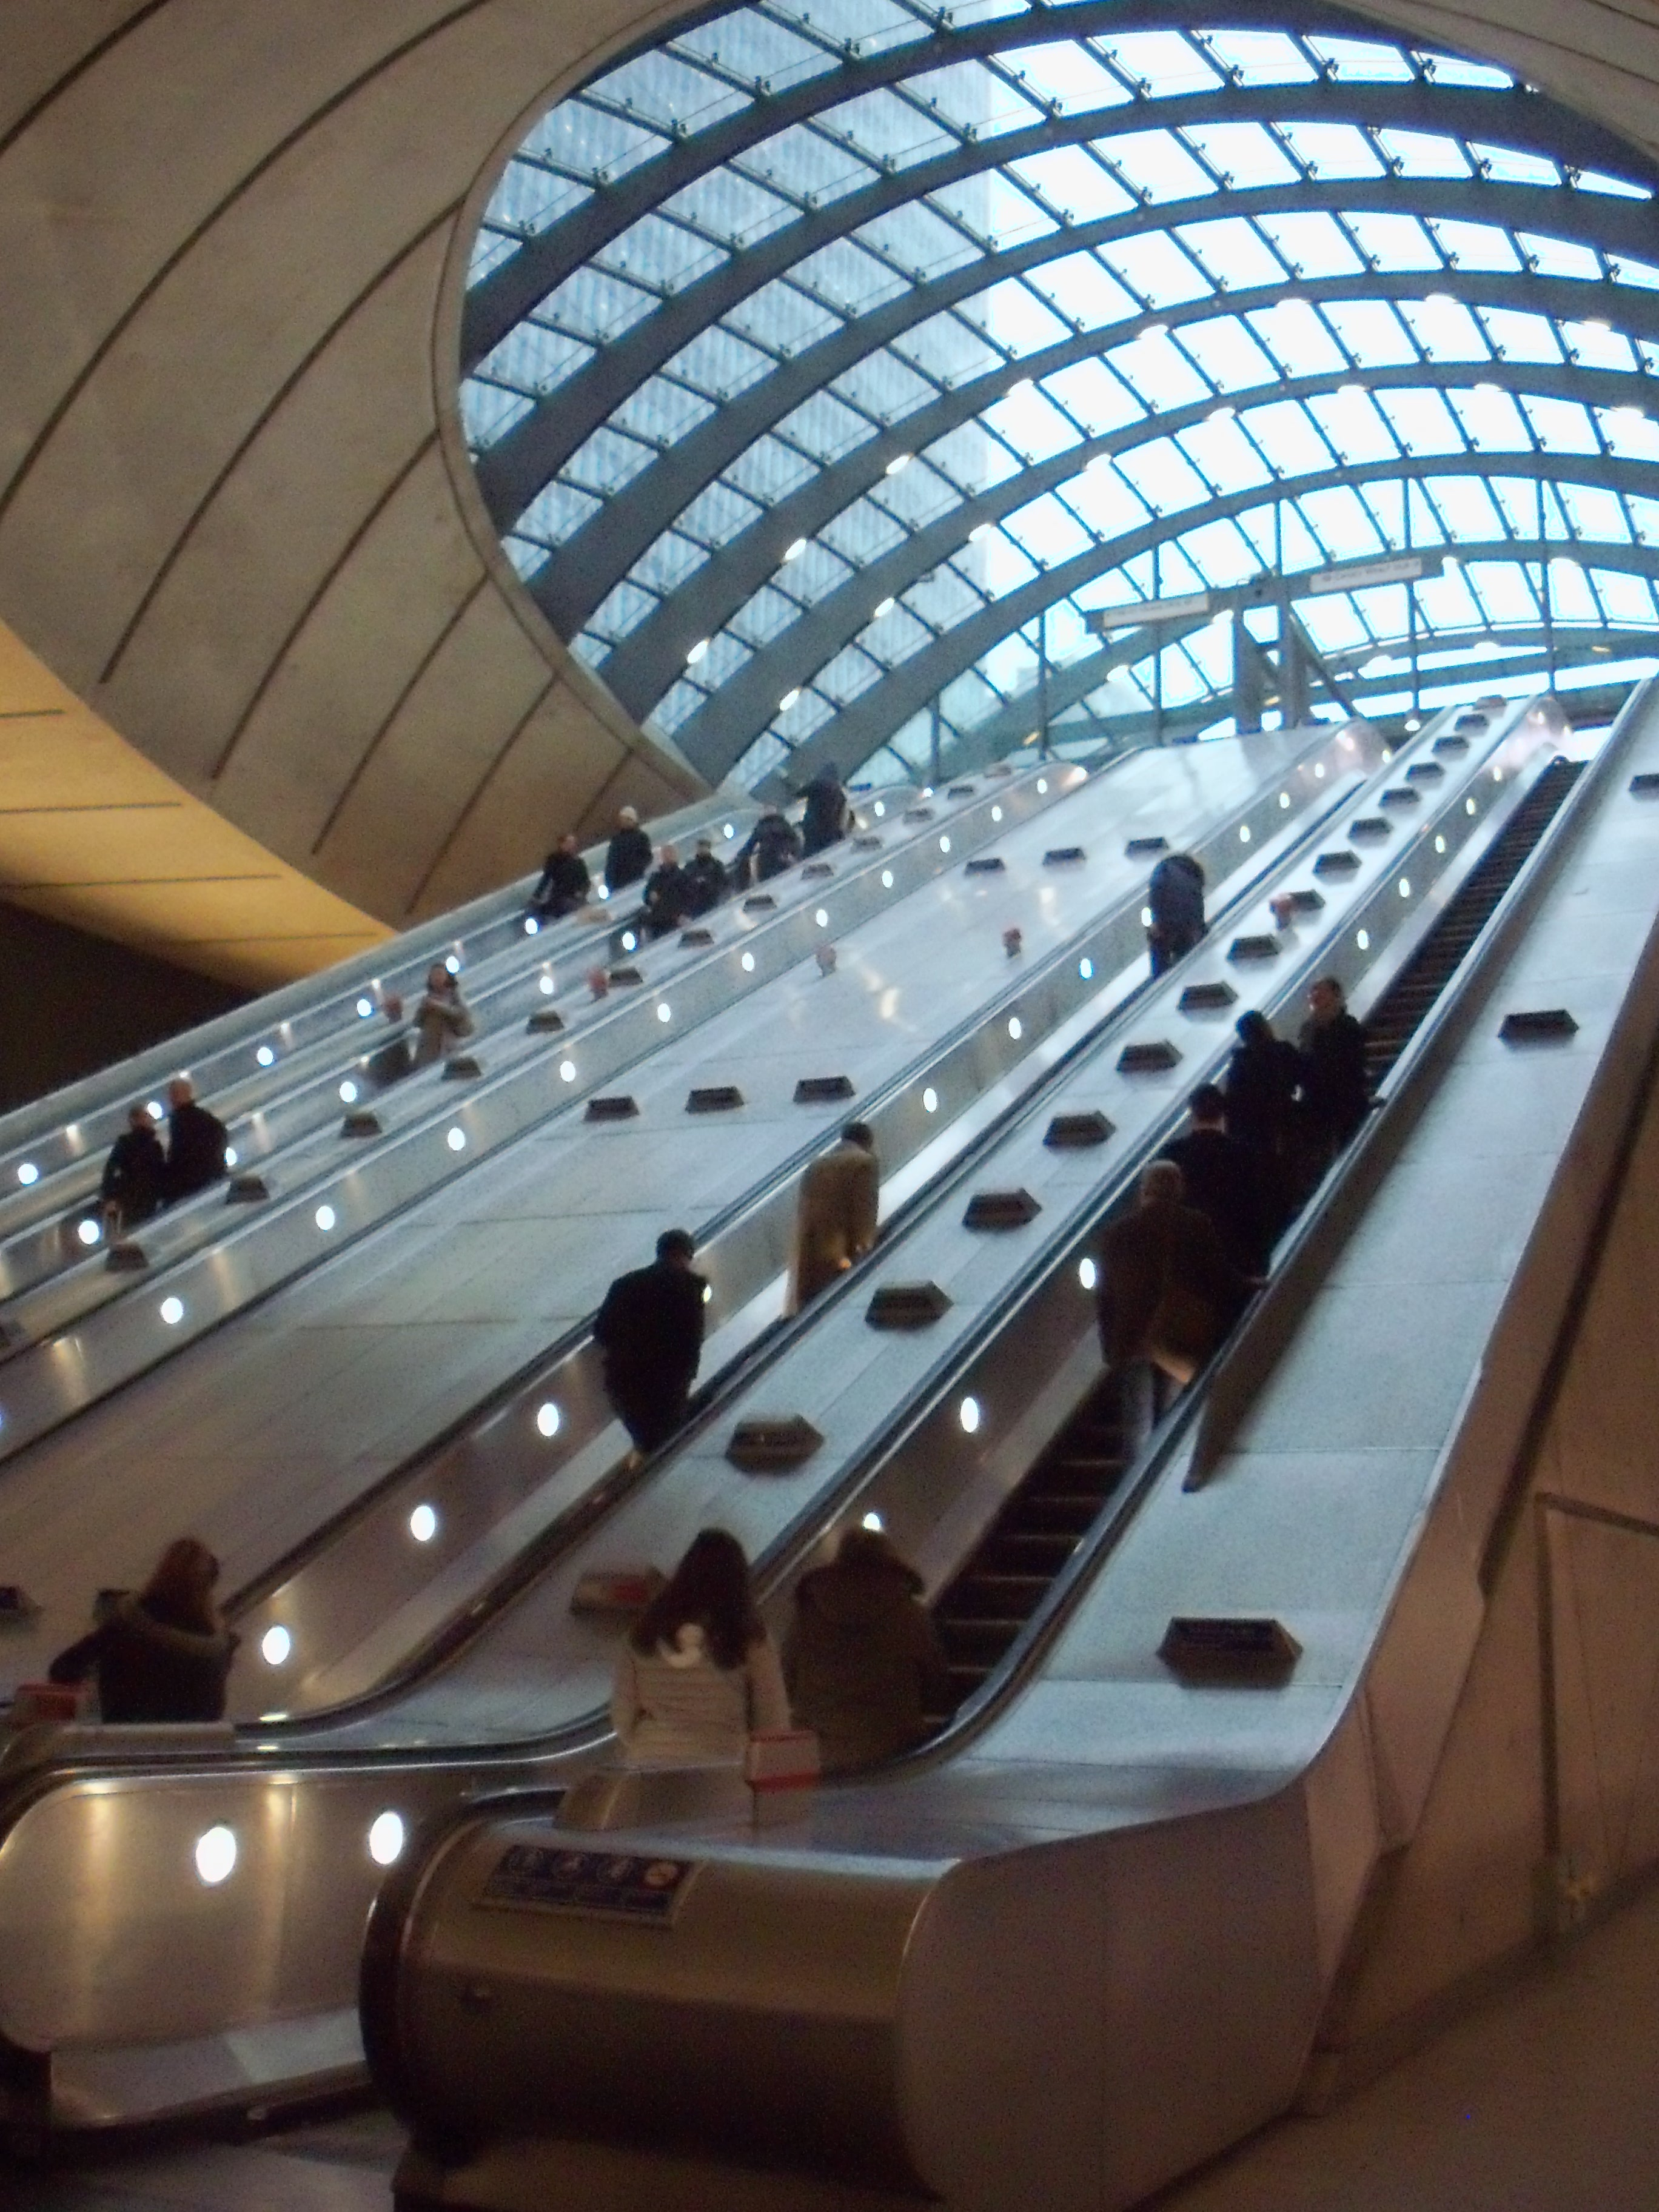 Canary Wharf Escalators.JPG